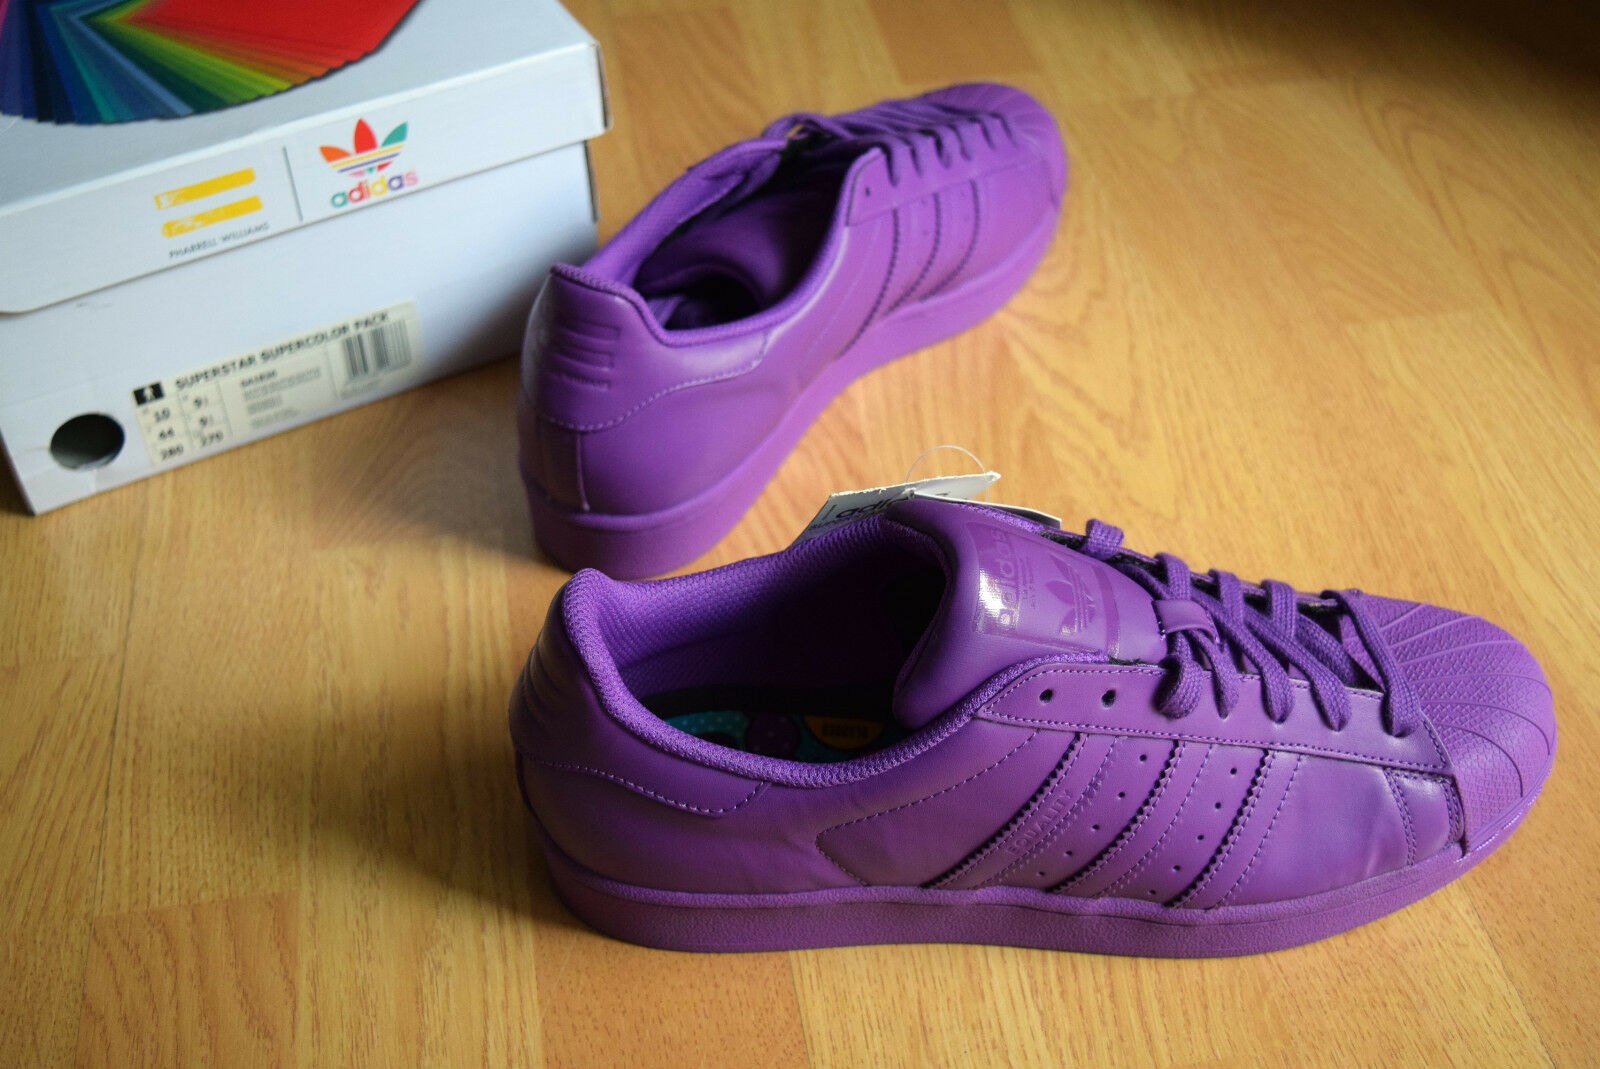 Adidas Superstar Supercolor 44 44,5 45 Smith Purple Pharell Williams Stan Smith 45 PW 8f9c51